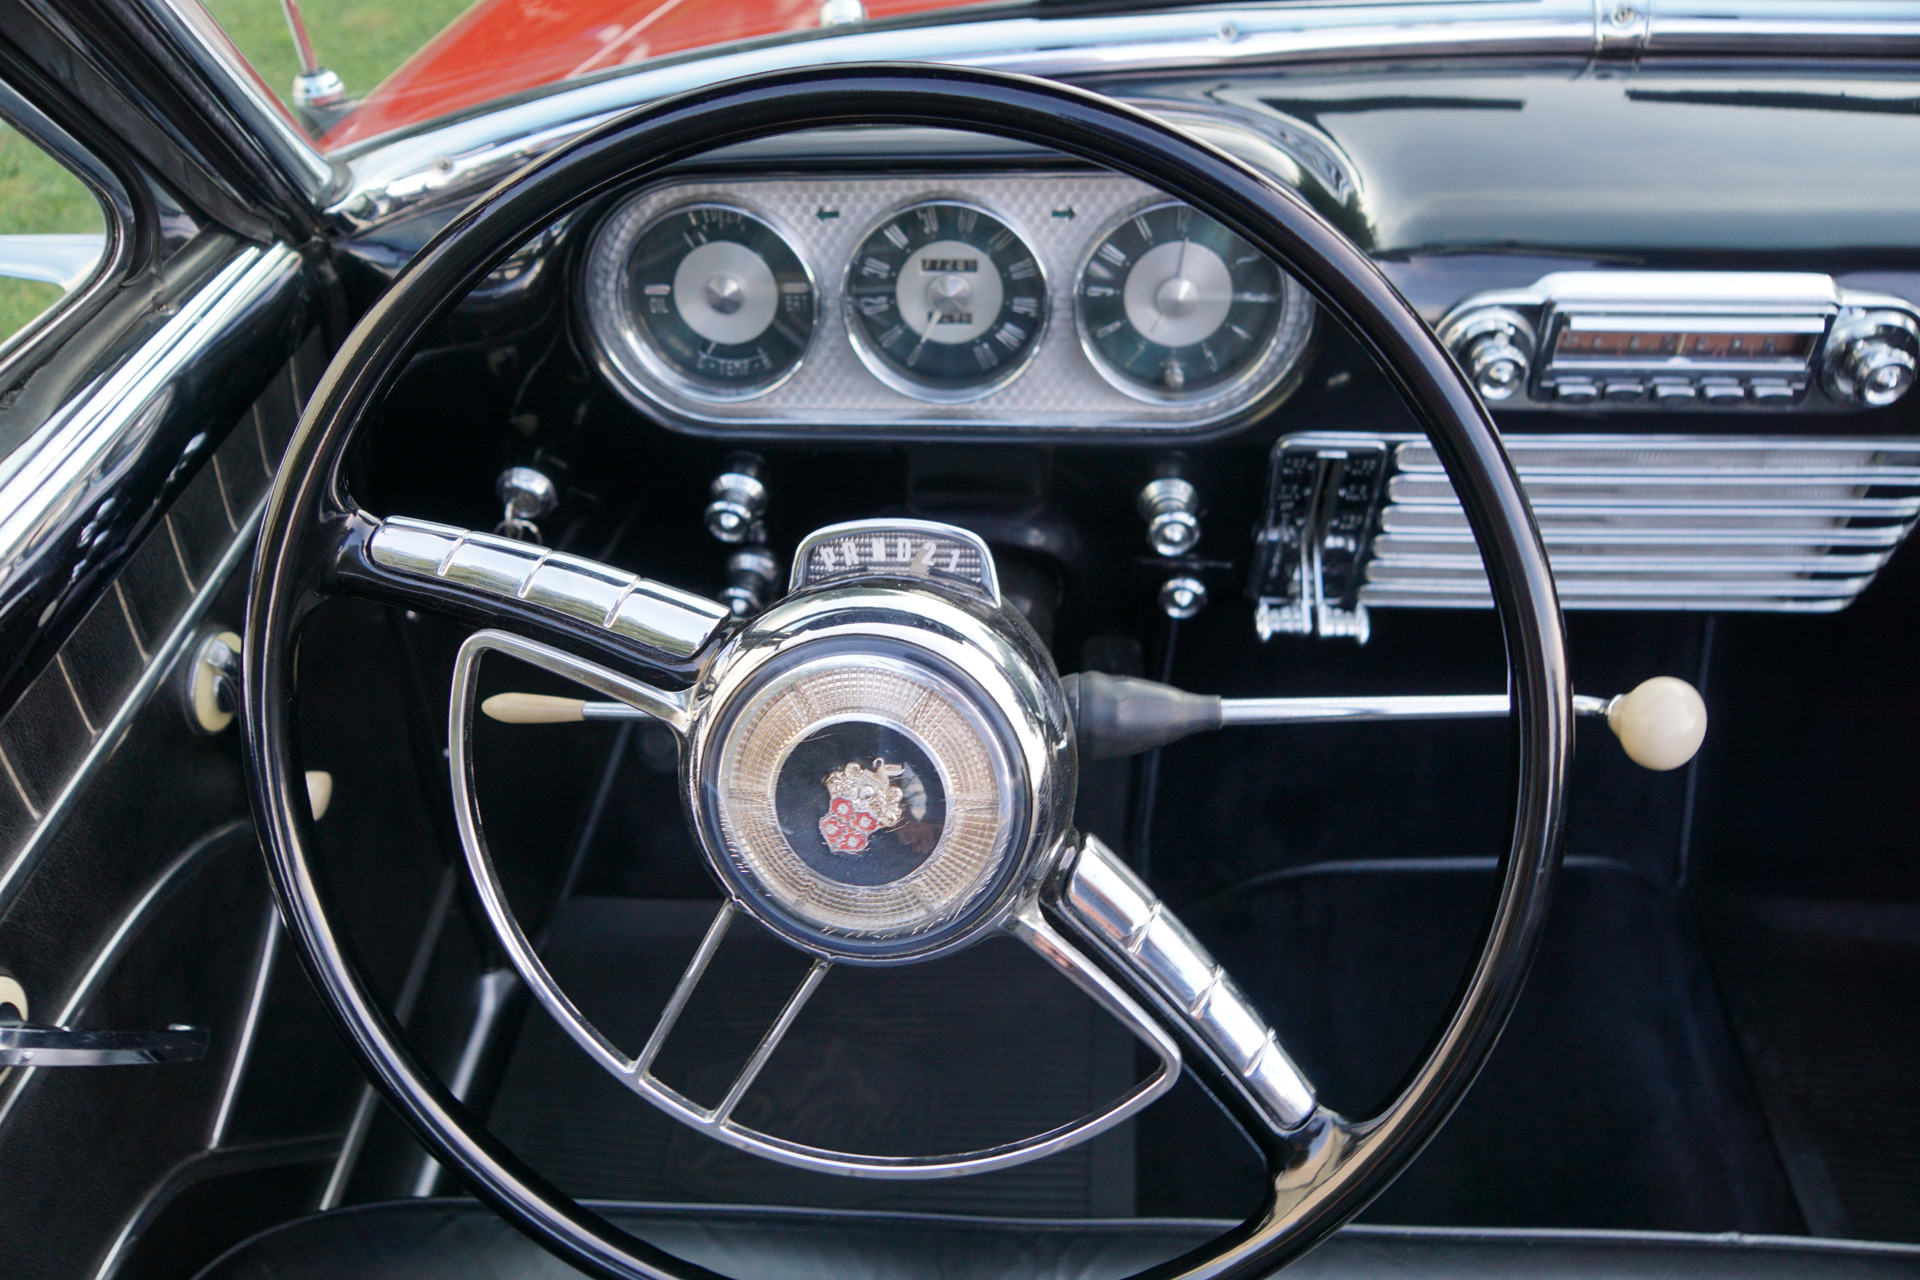 1953 Packard 2631 Series 2 Dr Convertible --: 77300 Miles 327 V8 AutomaticConvertible